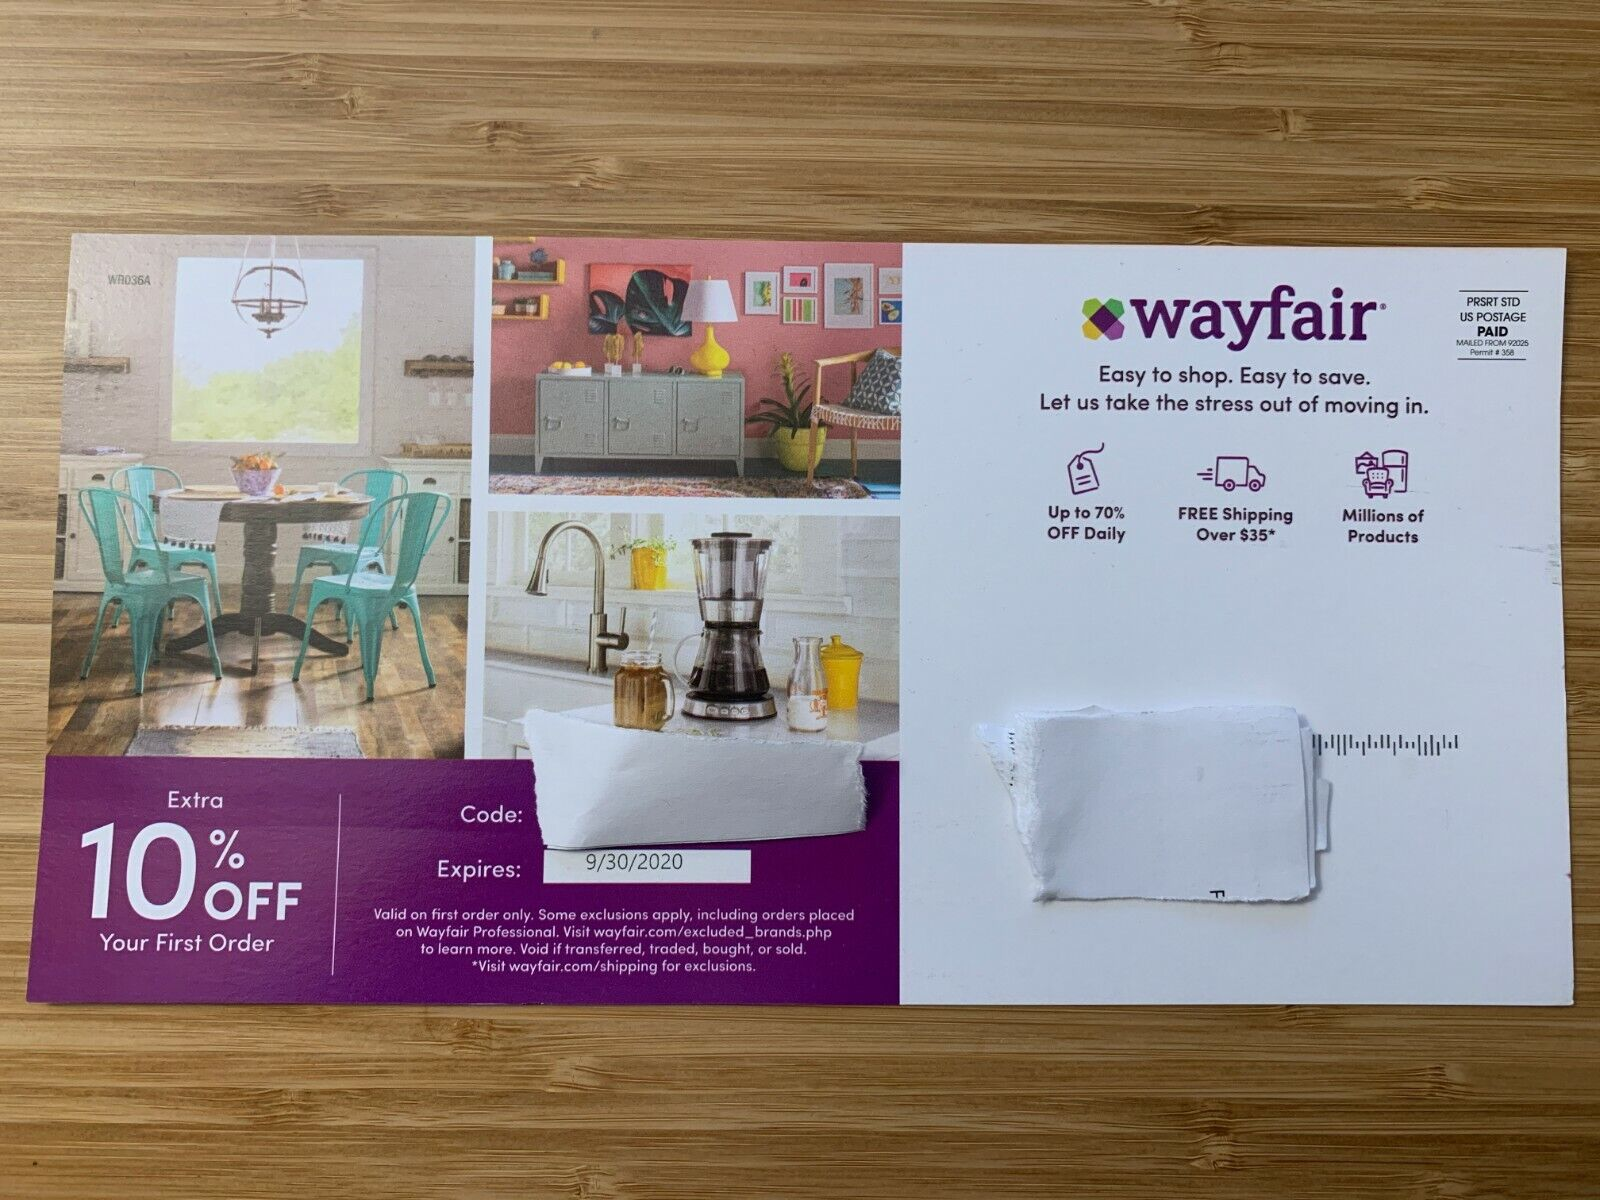 Wayfair.com 10 Off Coupon Exp 09/30/2020 FIRST ORDER FAST DELIVERY - $5.00